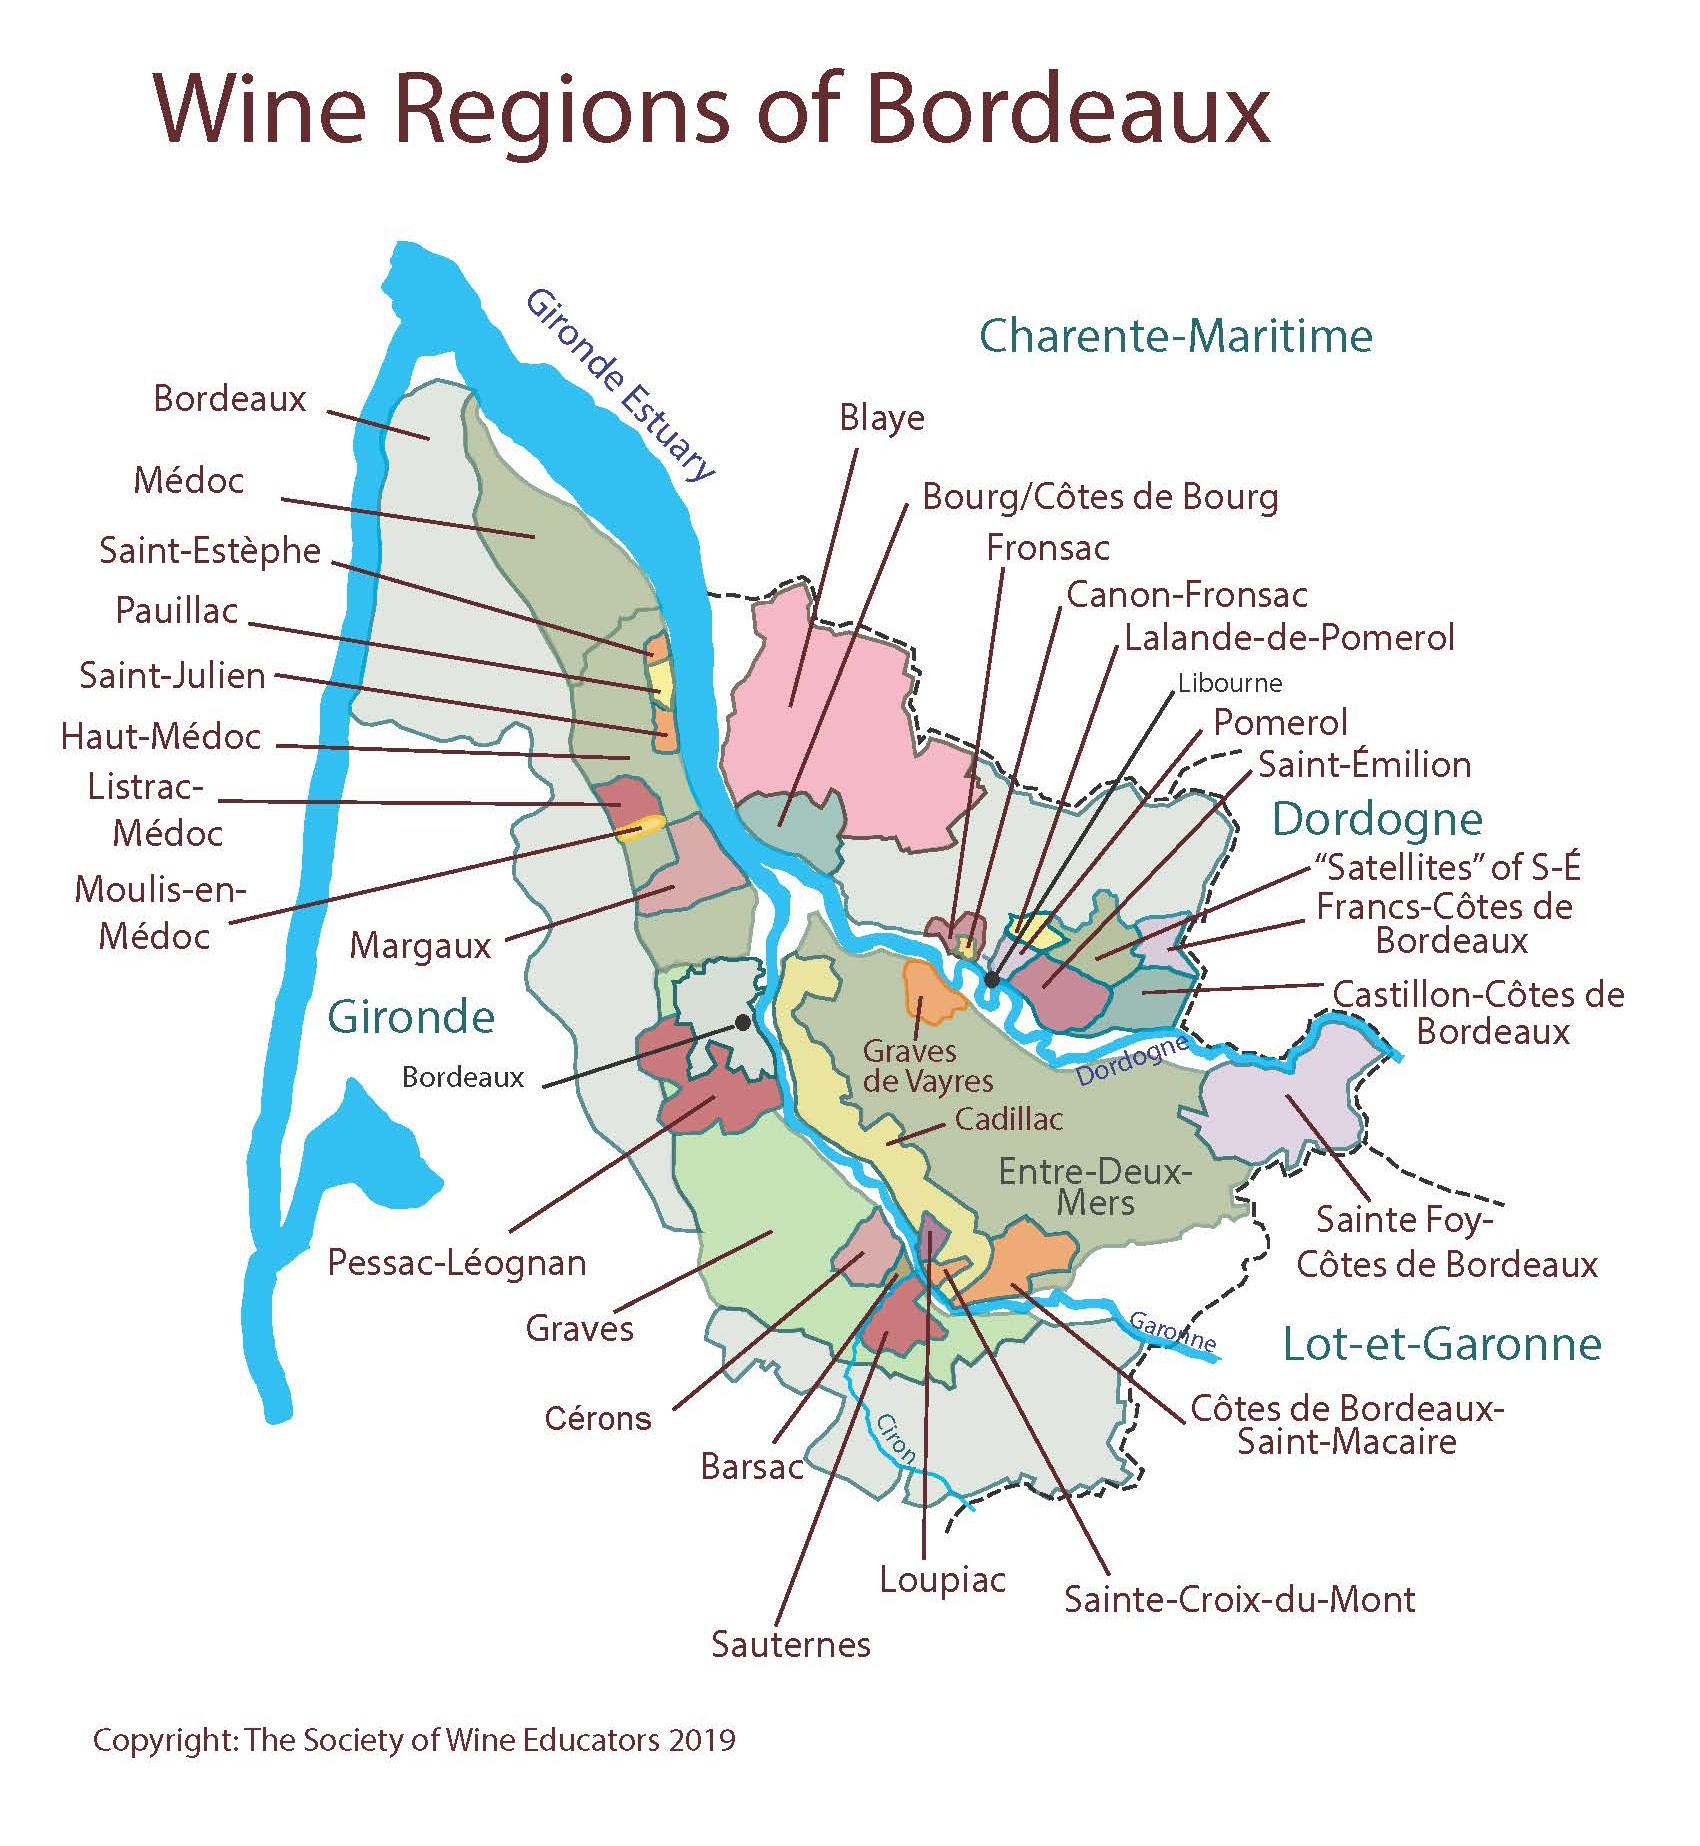 Map Of France Bordeaux.Swe Map 2019 France Bordeaux Wine Wit And Wisdom